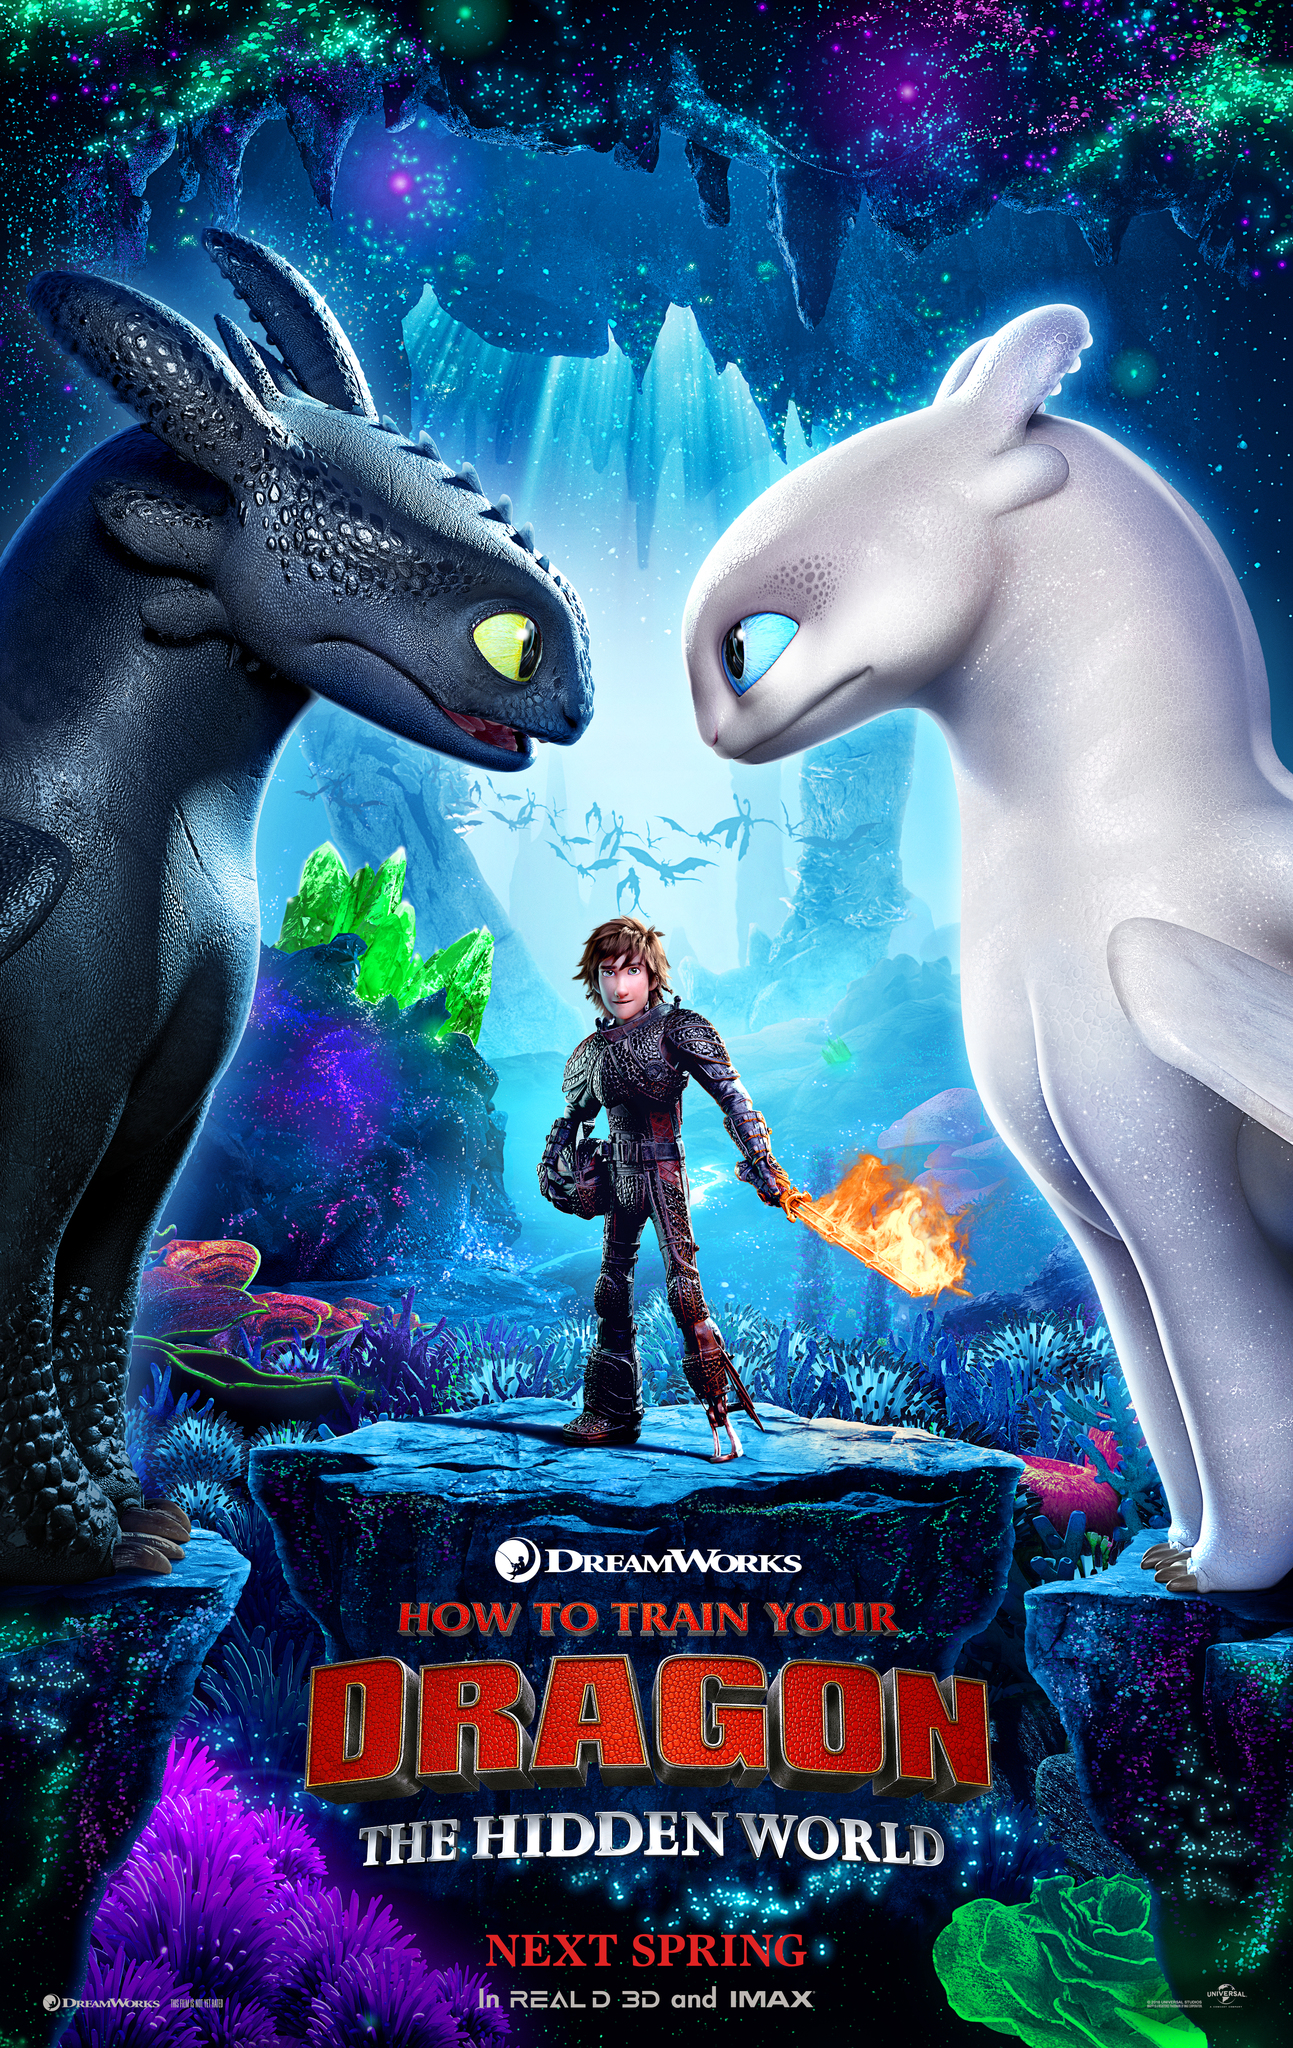 How To Train Your Dragon The Hidden World (2020) Bengali Dubbed 720p BluRay 800MB MKV